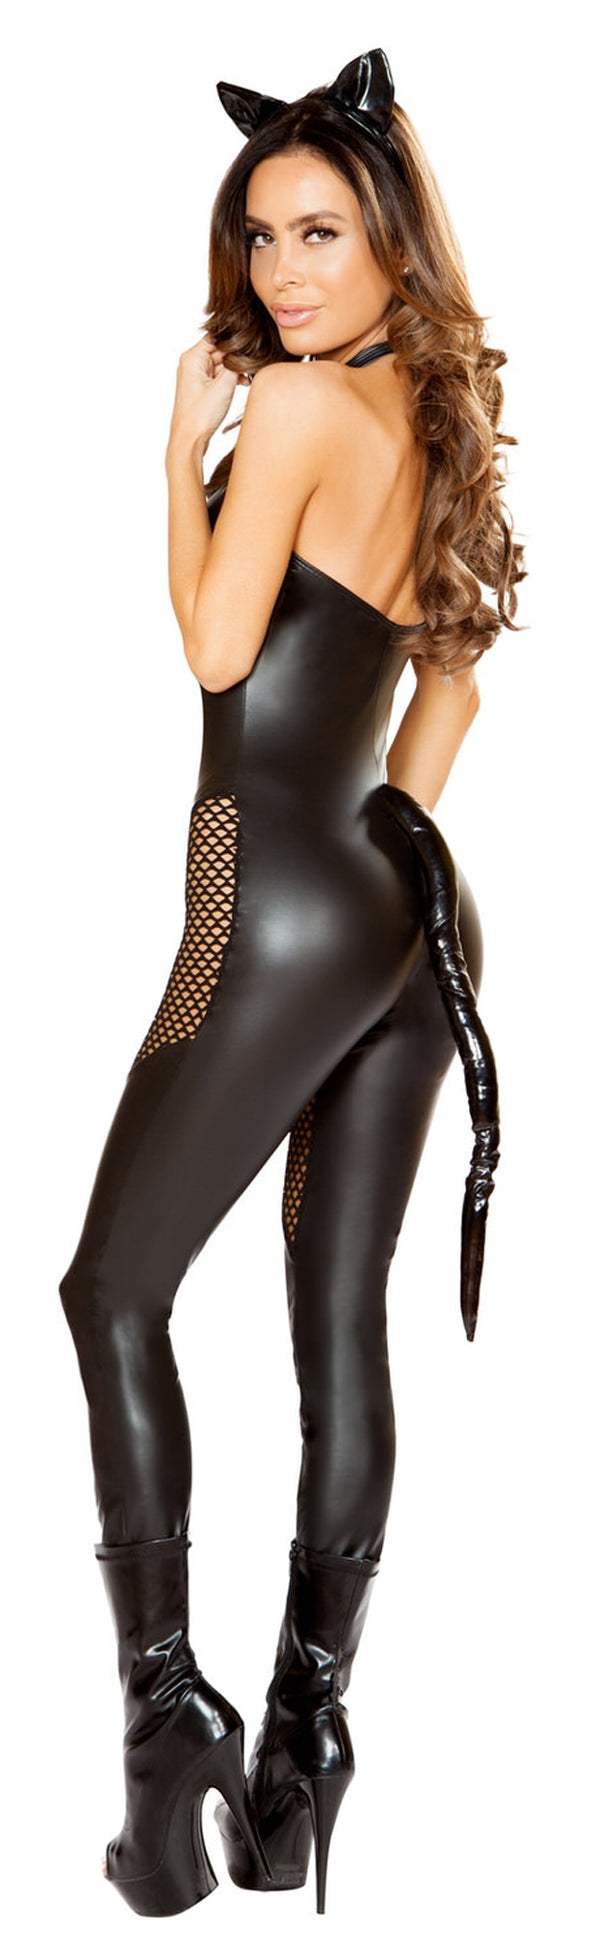 RM-10120 Kitty catsuit back